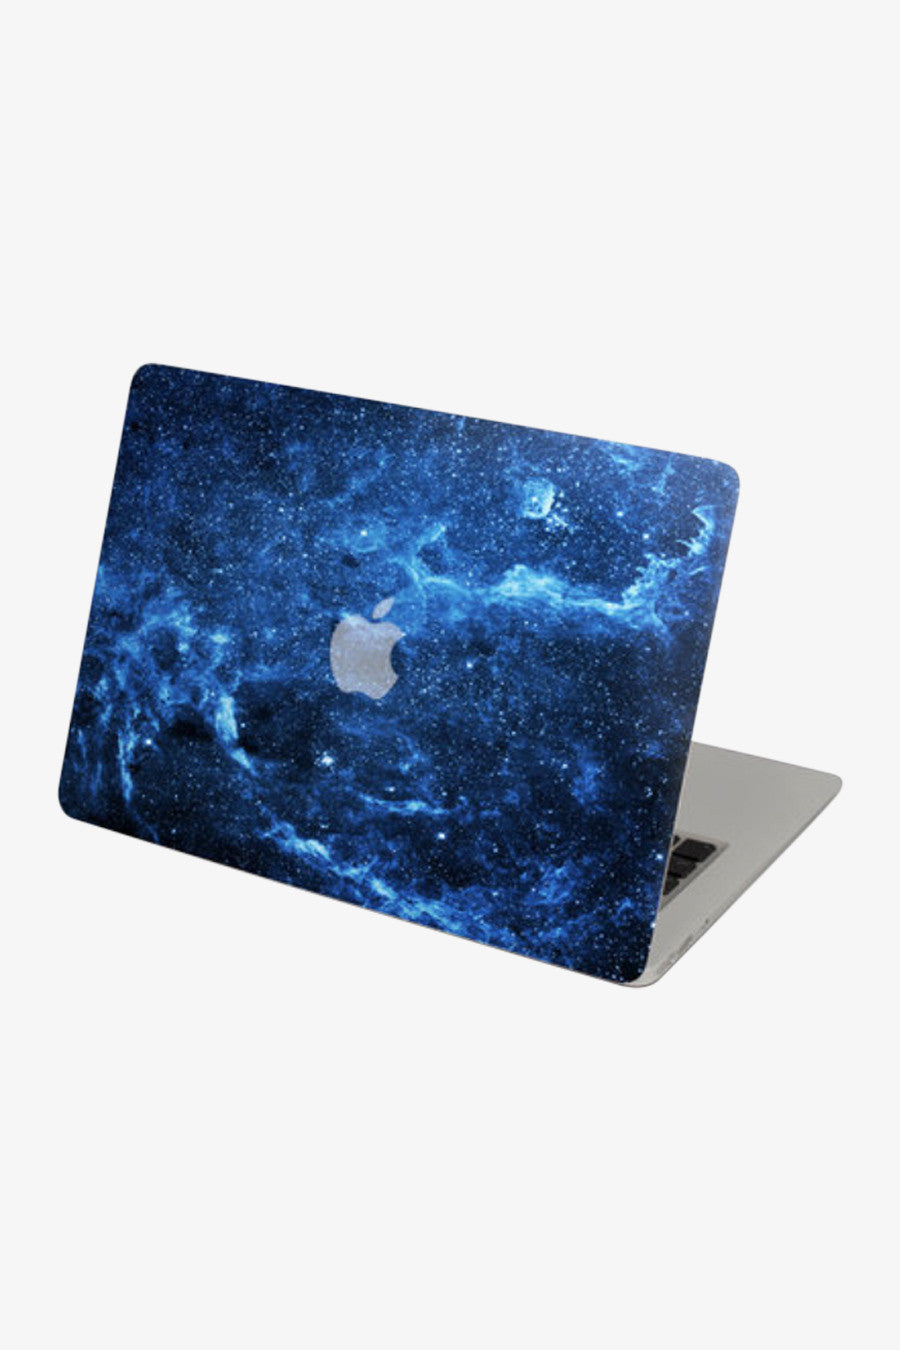 Macbook Gorgeous Nebula Decal Sticker. Art Decals By Moooh!!